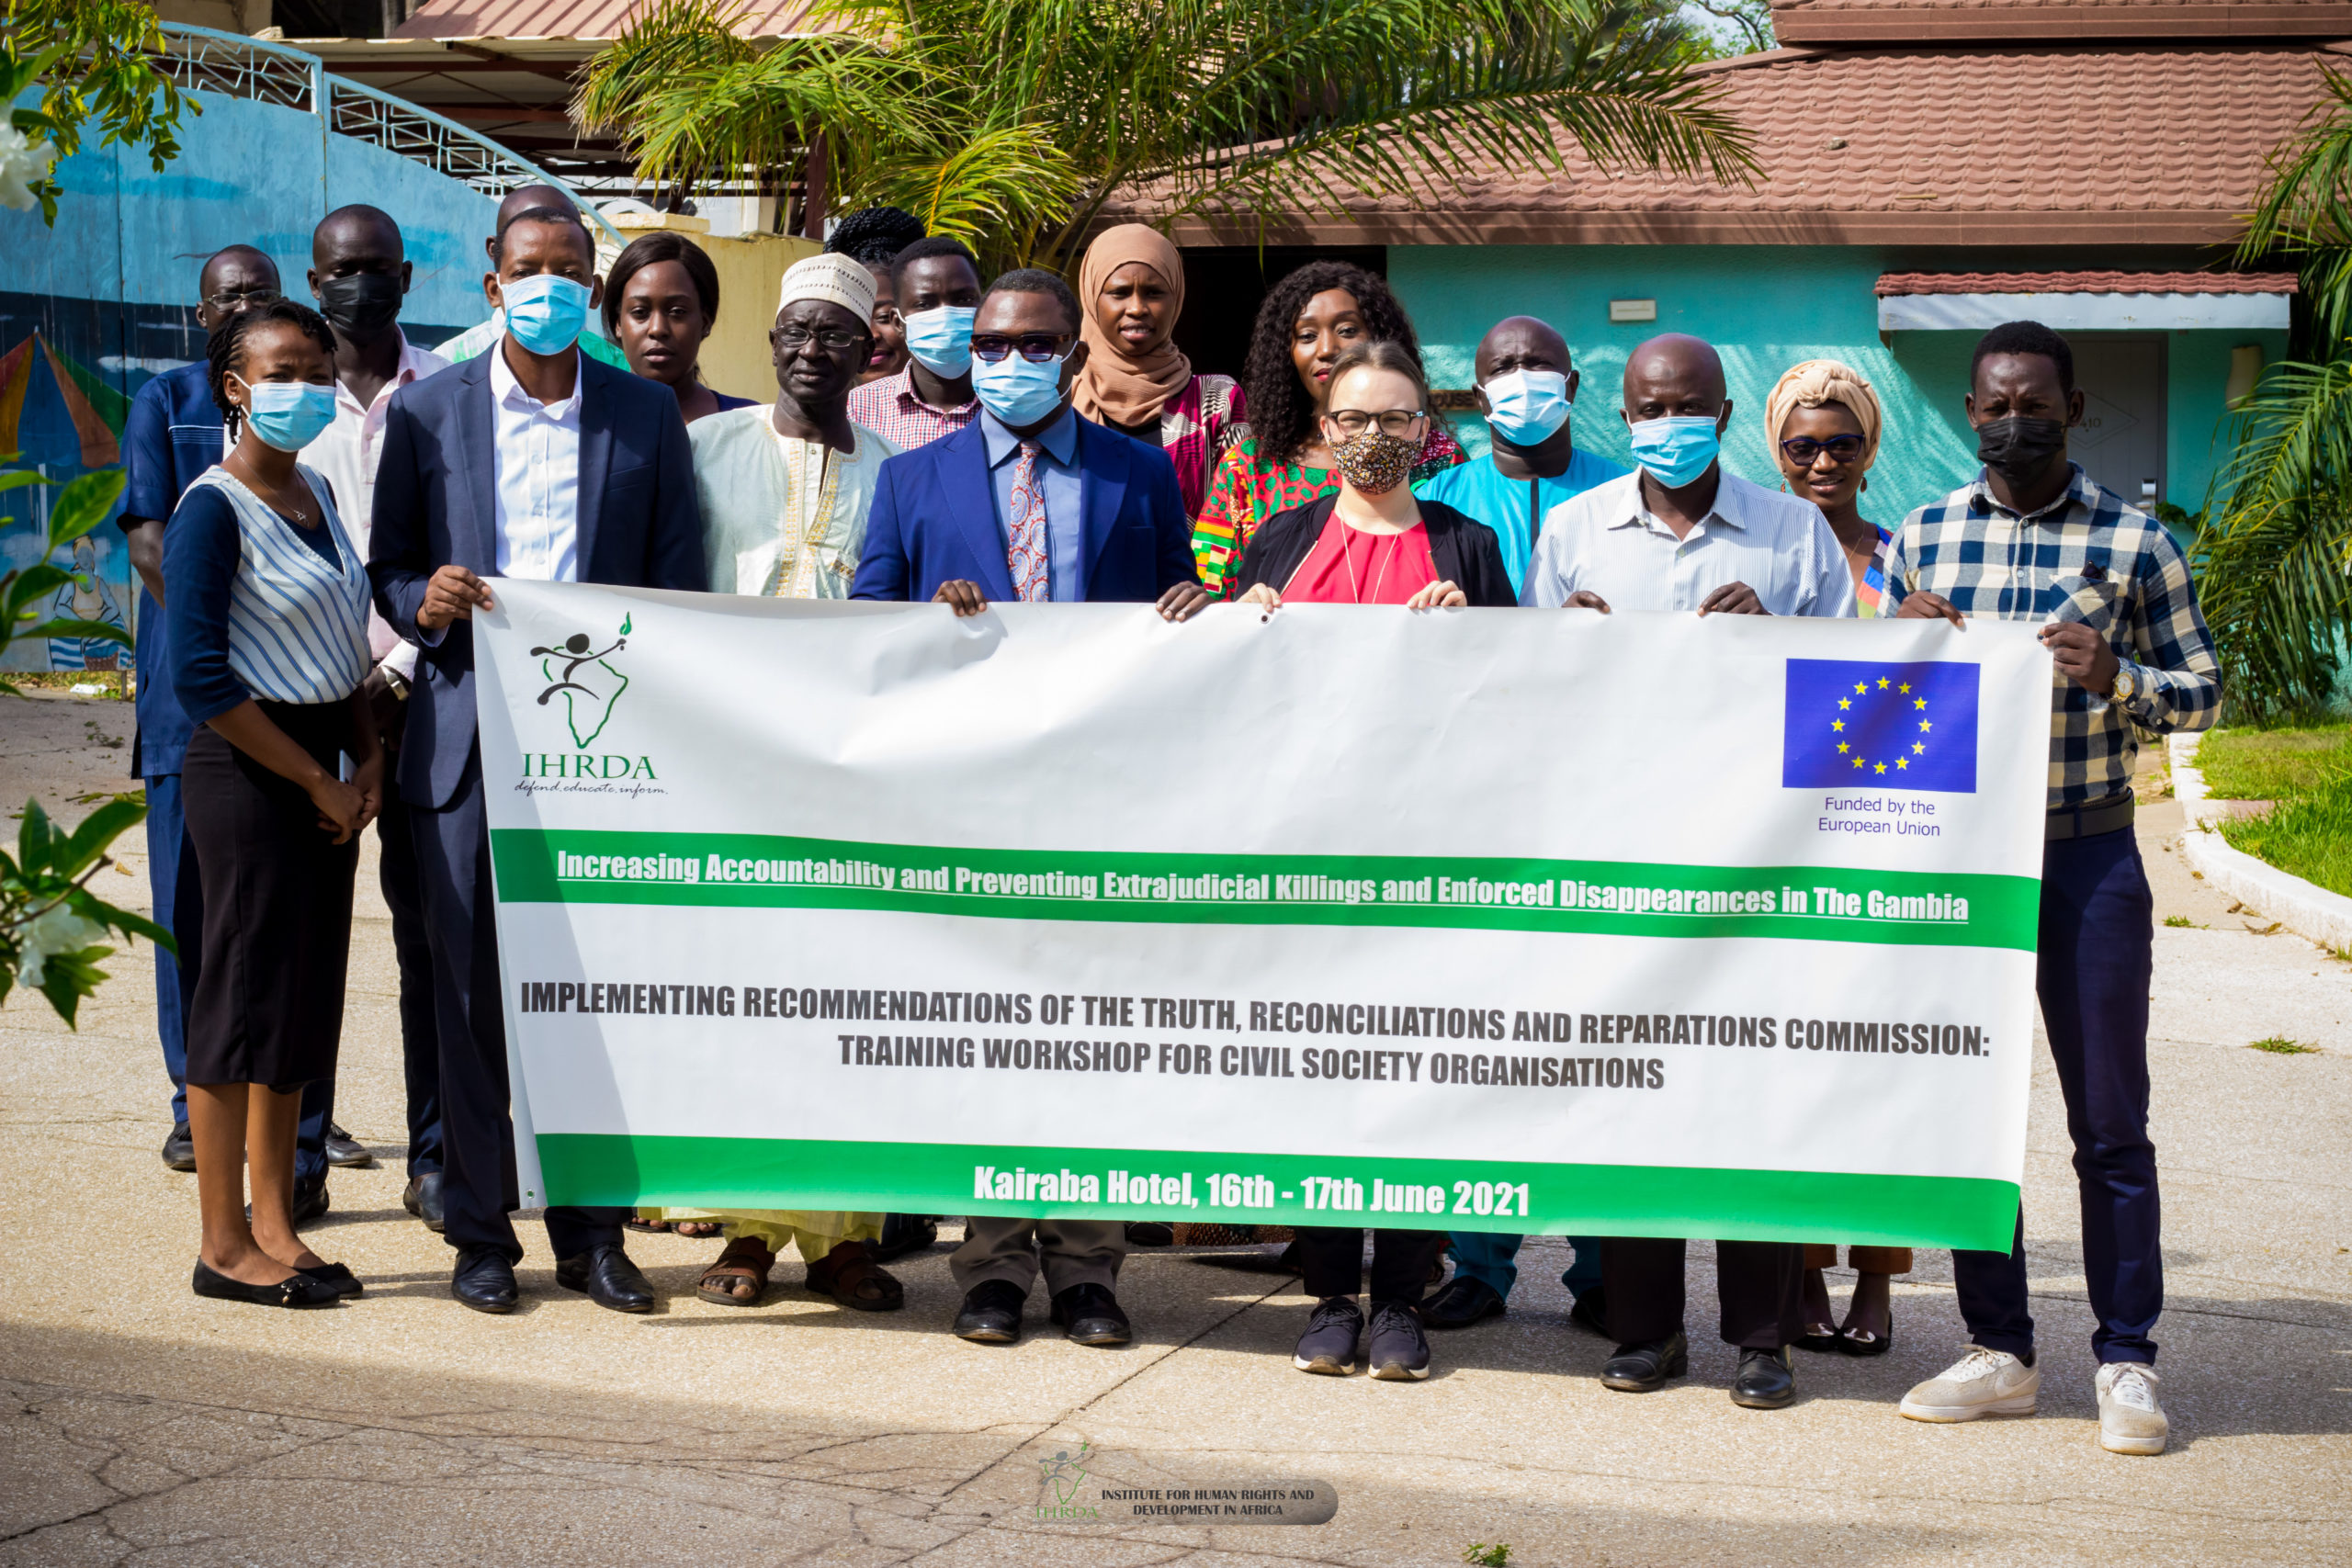 Combatting impunity for enforced disappearance, extrajudicial killings in The Gambia: IHRDA trains Gambia CSOs on implementation of TRRC recommendations